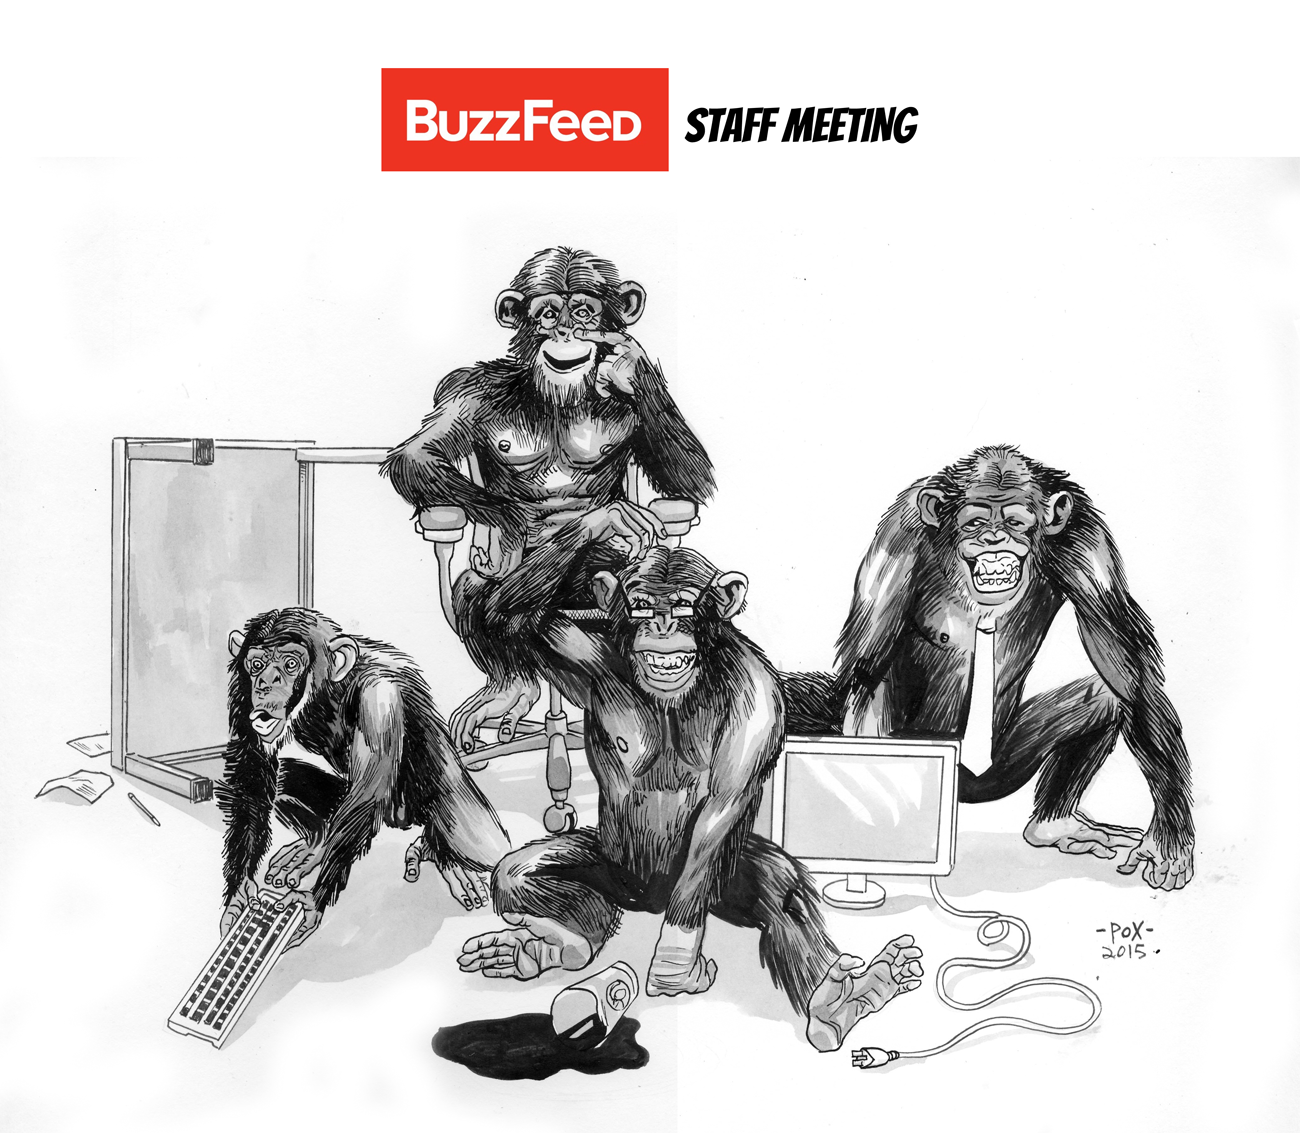 Buzzfeed Office